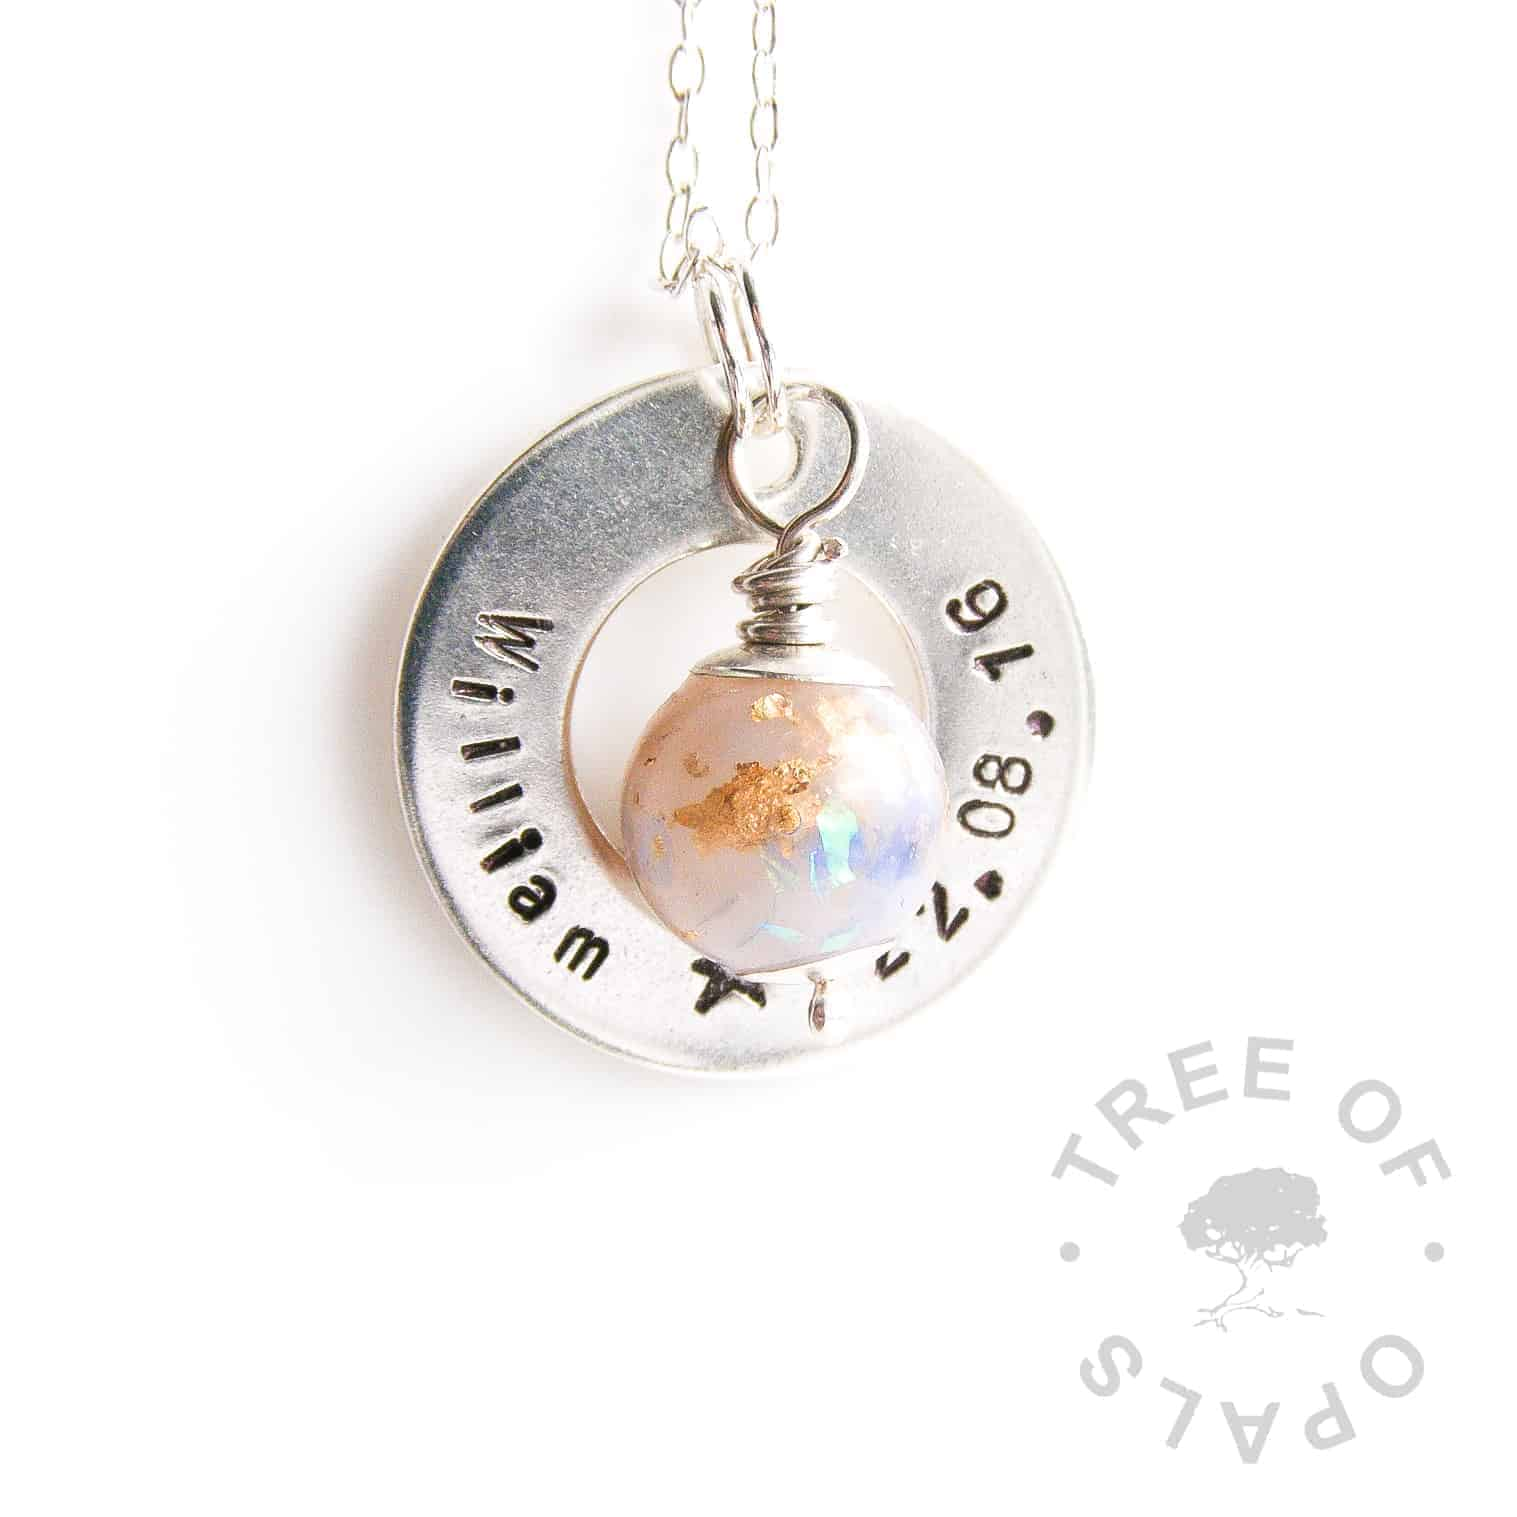 breastmilk pearl necklace washer gold leaf and white opalescent flakes, hand stamped with name and DOB in solid sterling silver